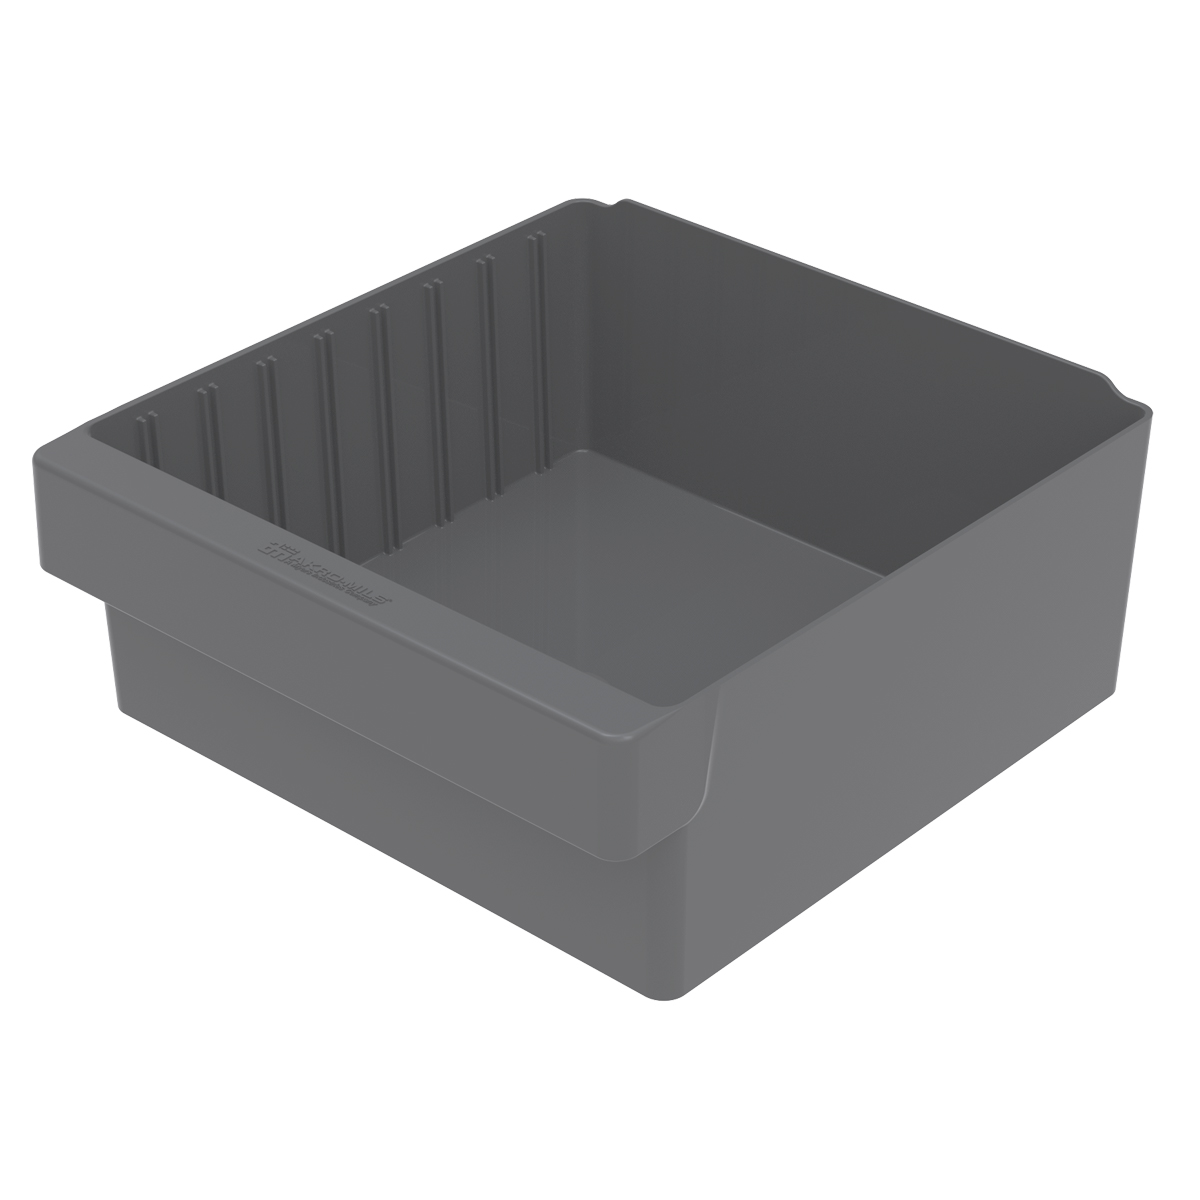 AkroDrawer 11-5/8 x 11-1/8 x 4-5/8, Gray (31112GRY).  This item sold in carton quantities of 4.